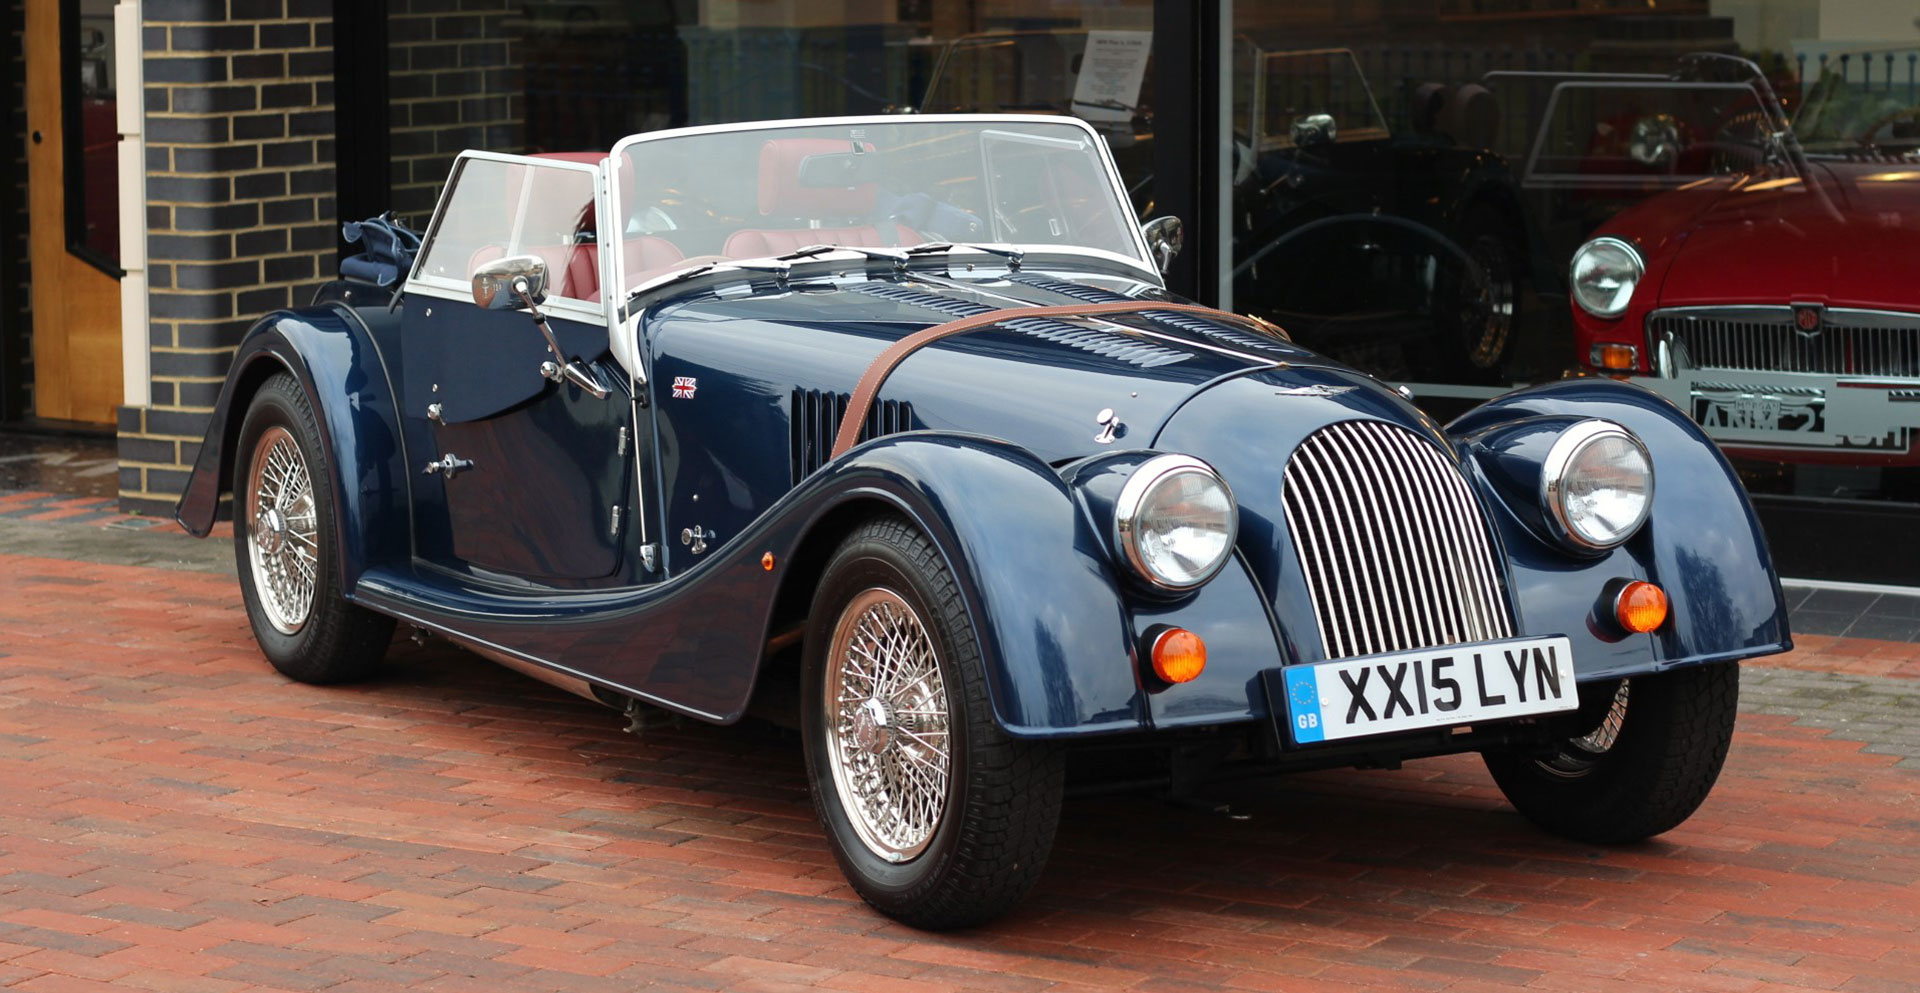 Morgan Cars For Sale From Melvyn Rutter Ltd, Morgan Main